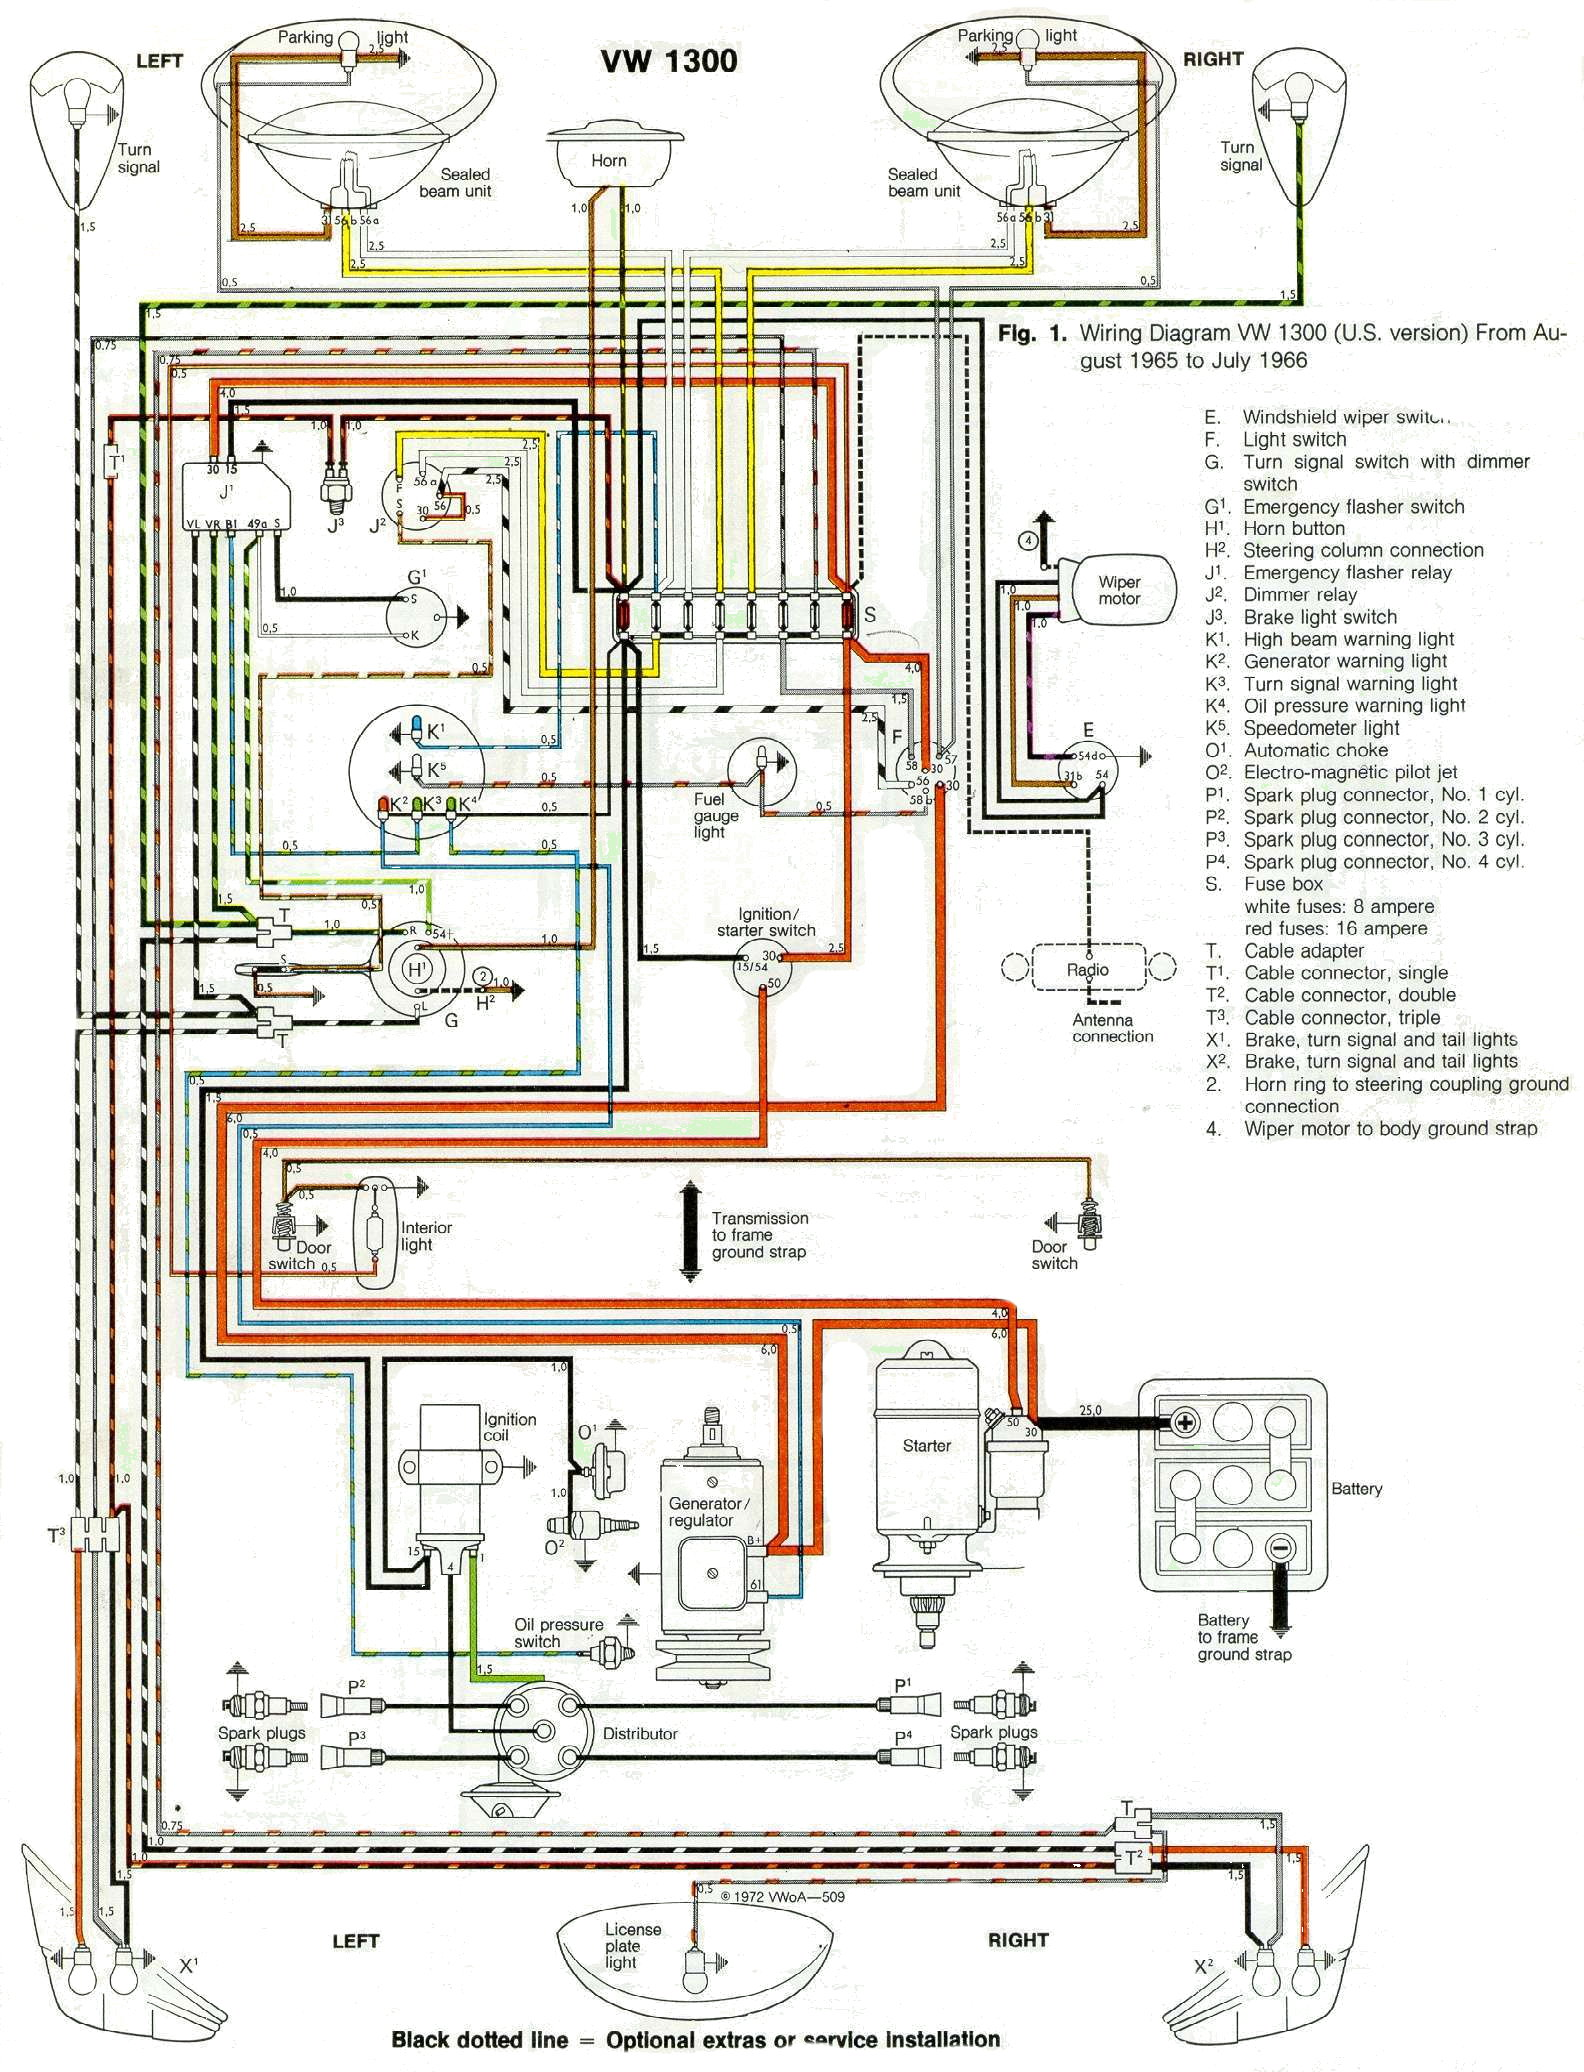 1966 Wiring 1966 wiring diagram vw golf 3 electrical wiring diagram at webbmarketing.co